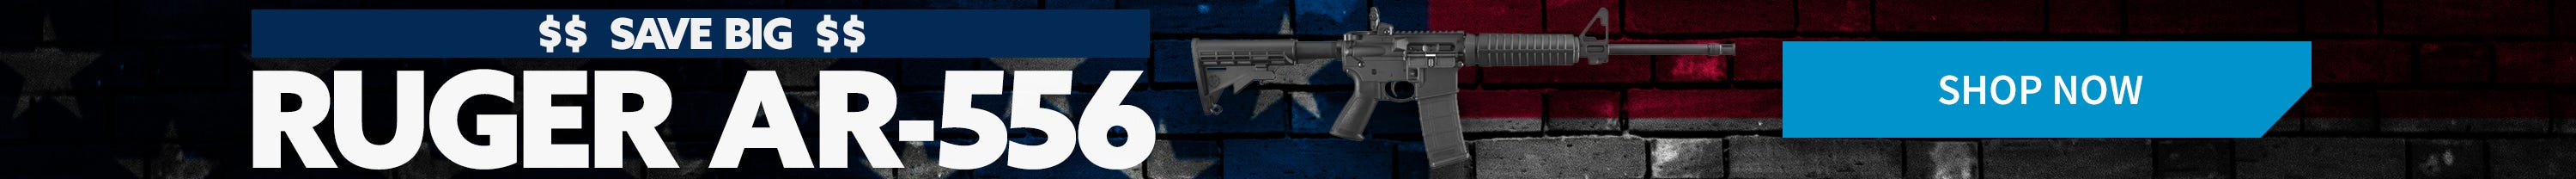 Cray Low Price on Ruger AR-556